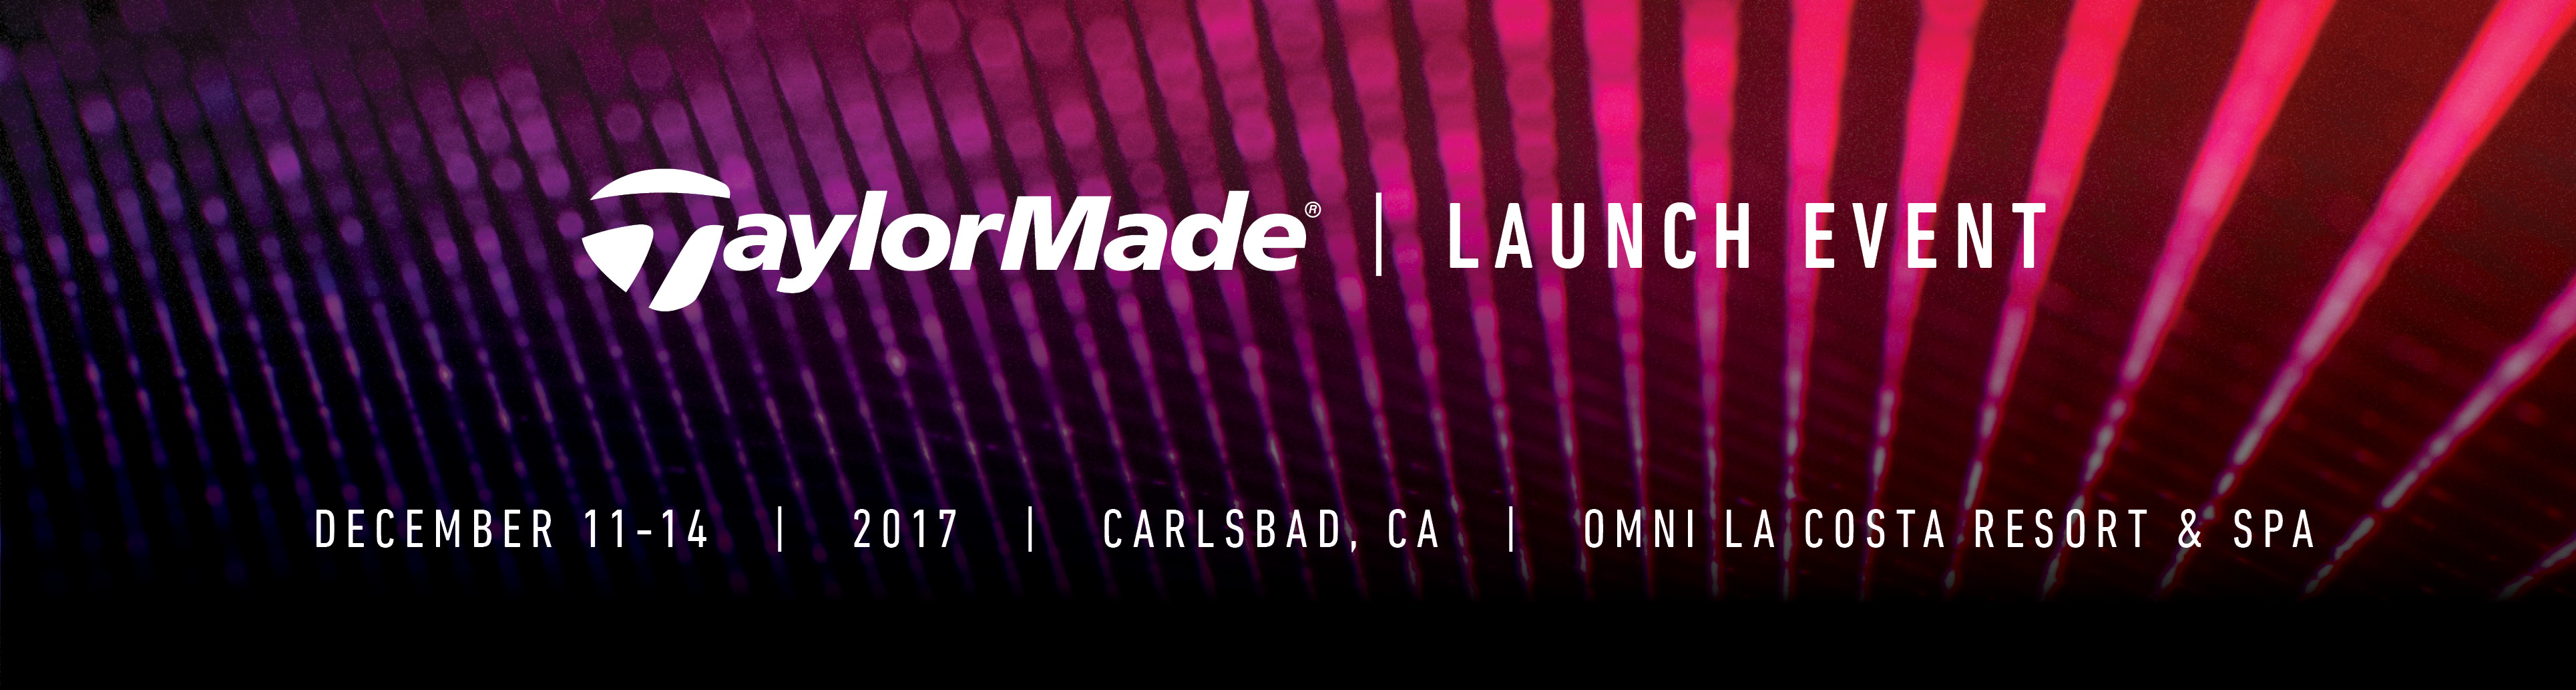 TaylorMade Launch